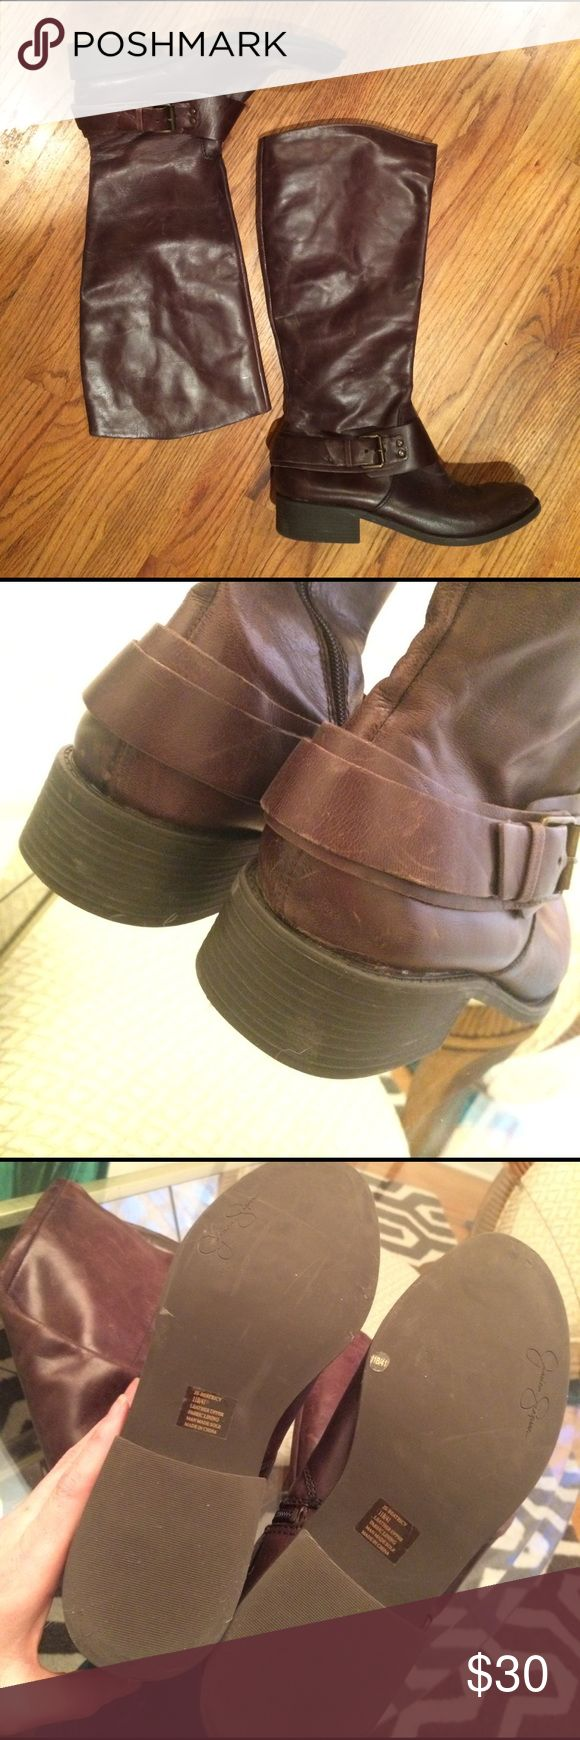 Jessica Simpson leather boots Jessica Simpson - leather - size 11 - super cute and comfortable - excellent condition - made in China - zip up - adjustable buckle around ankle Jessica Simpson Shoes